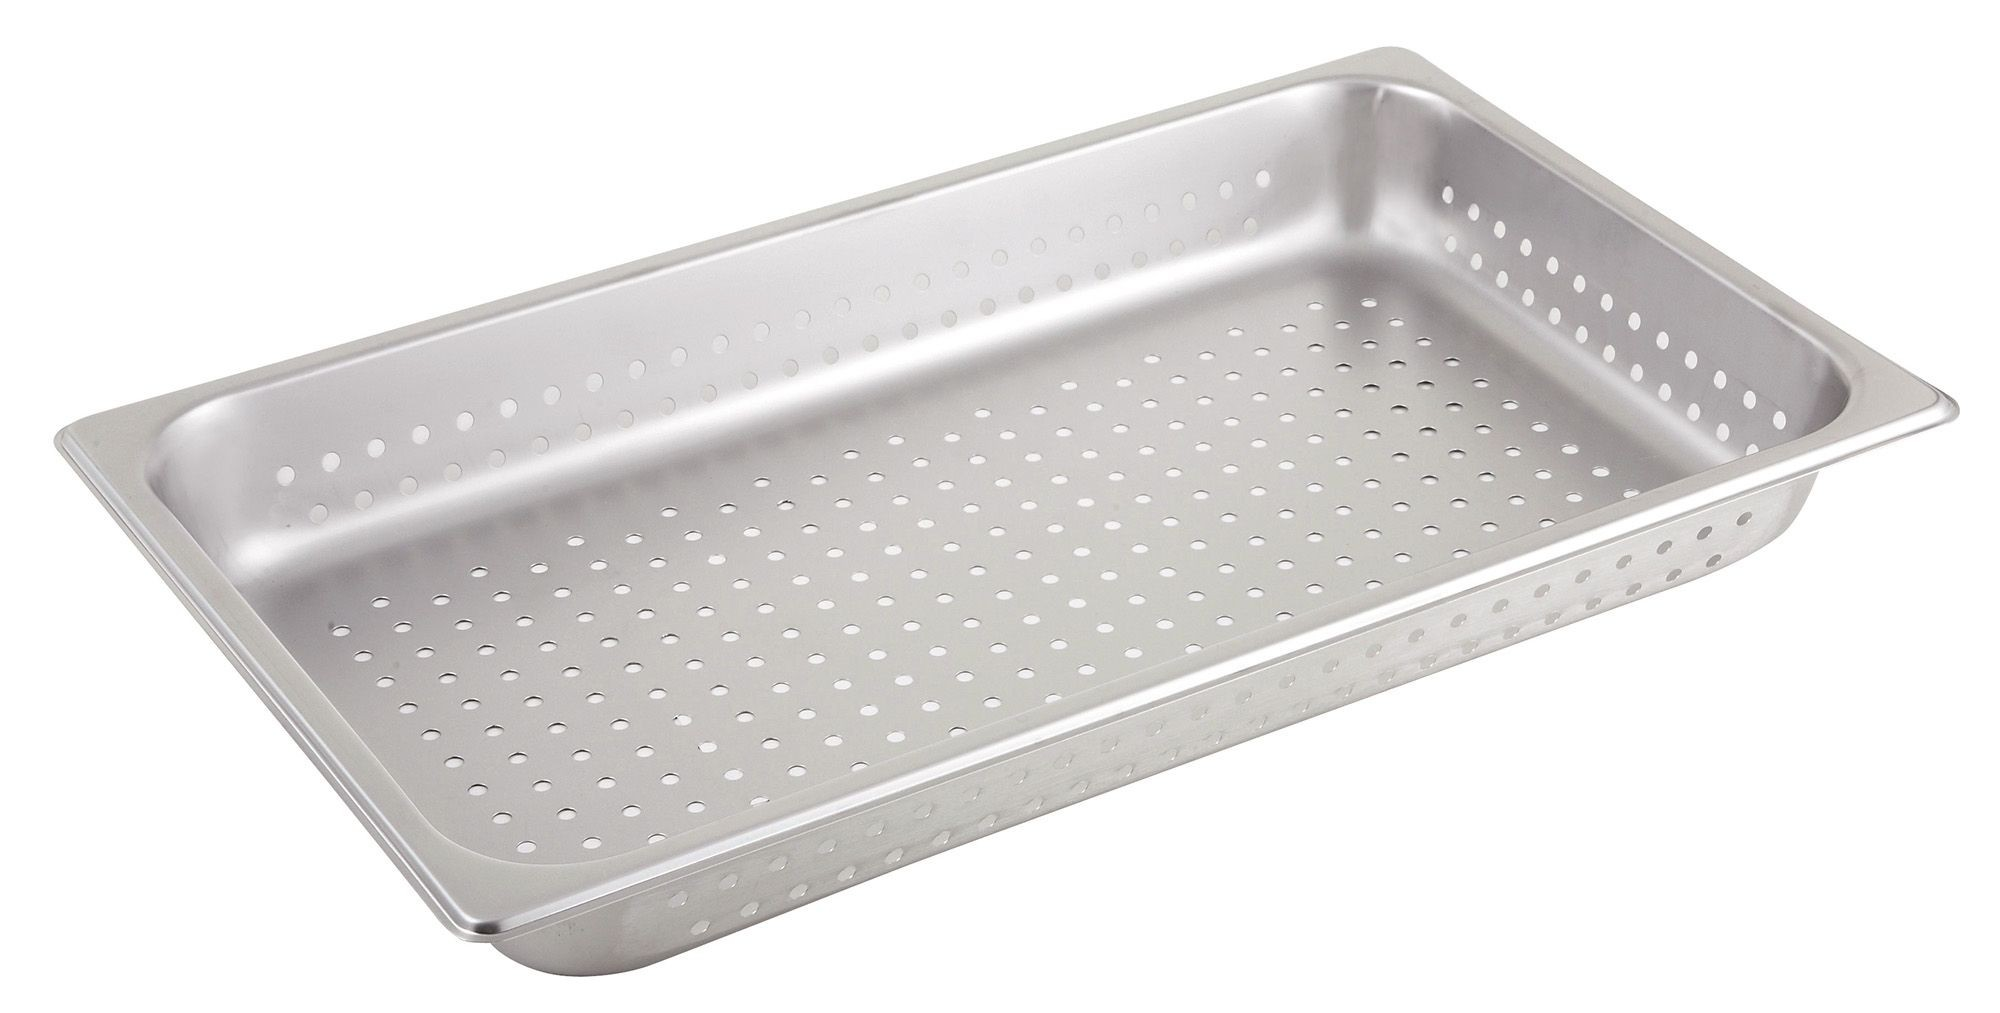 Stainless Steel Perforated Full-Size Steam Table Pan - 2-1/2